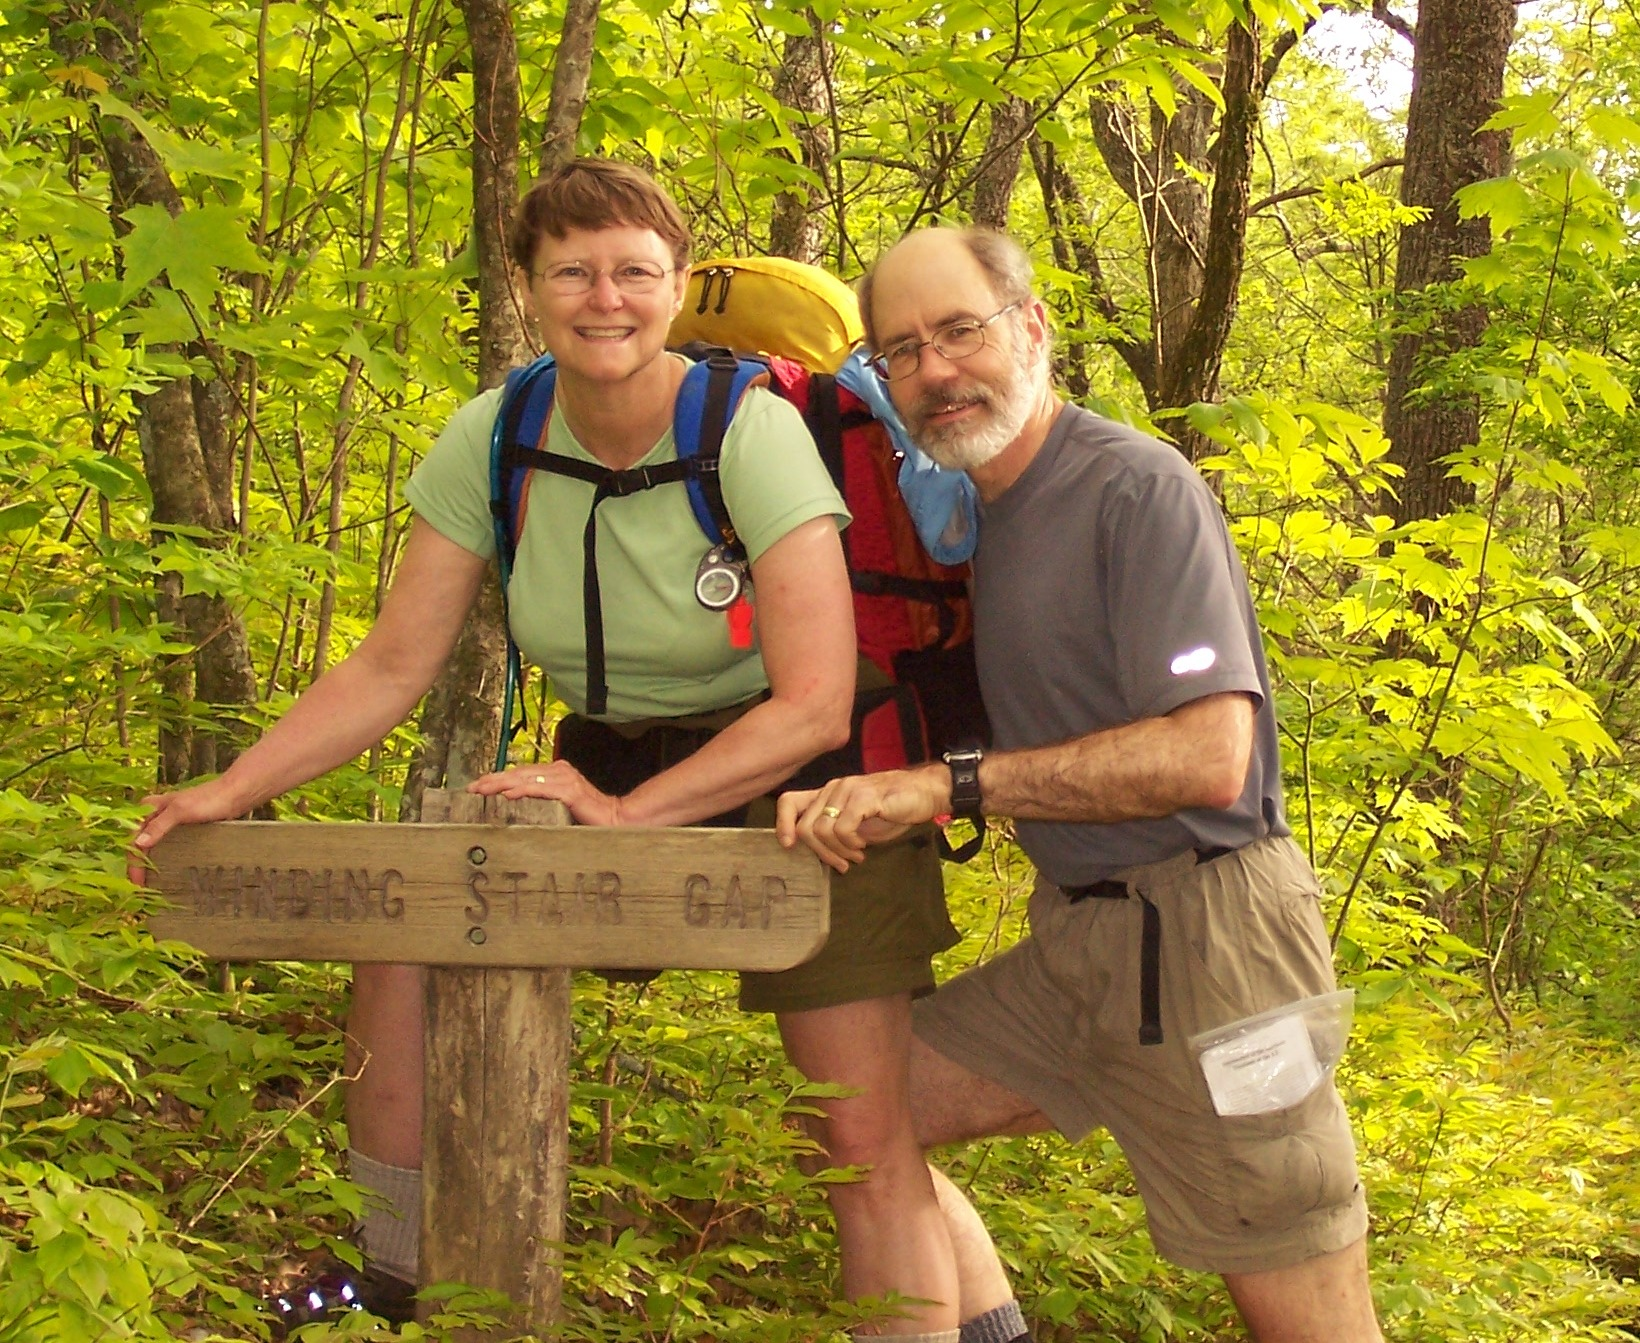 Bill and Sharon at Winding Stair Gap.jpg